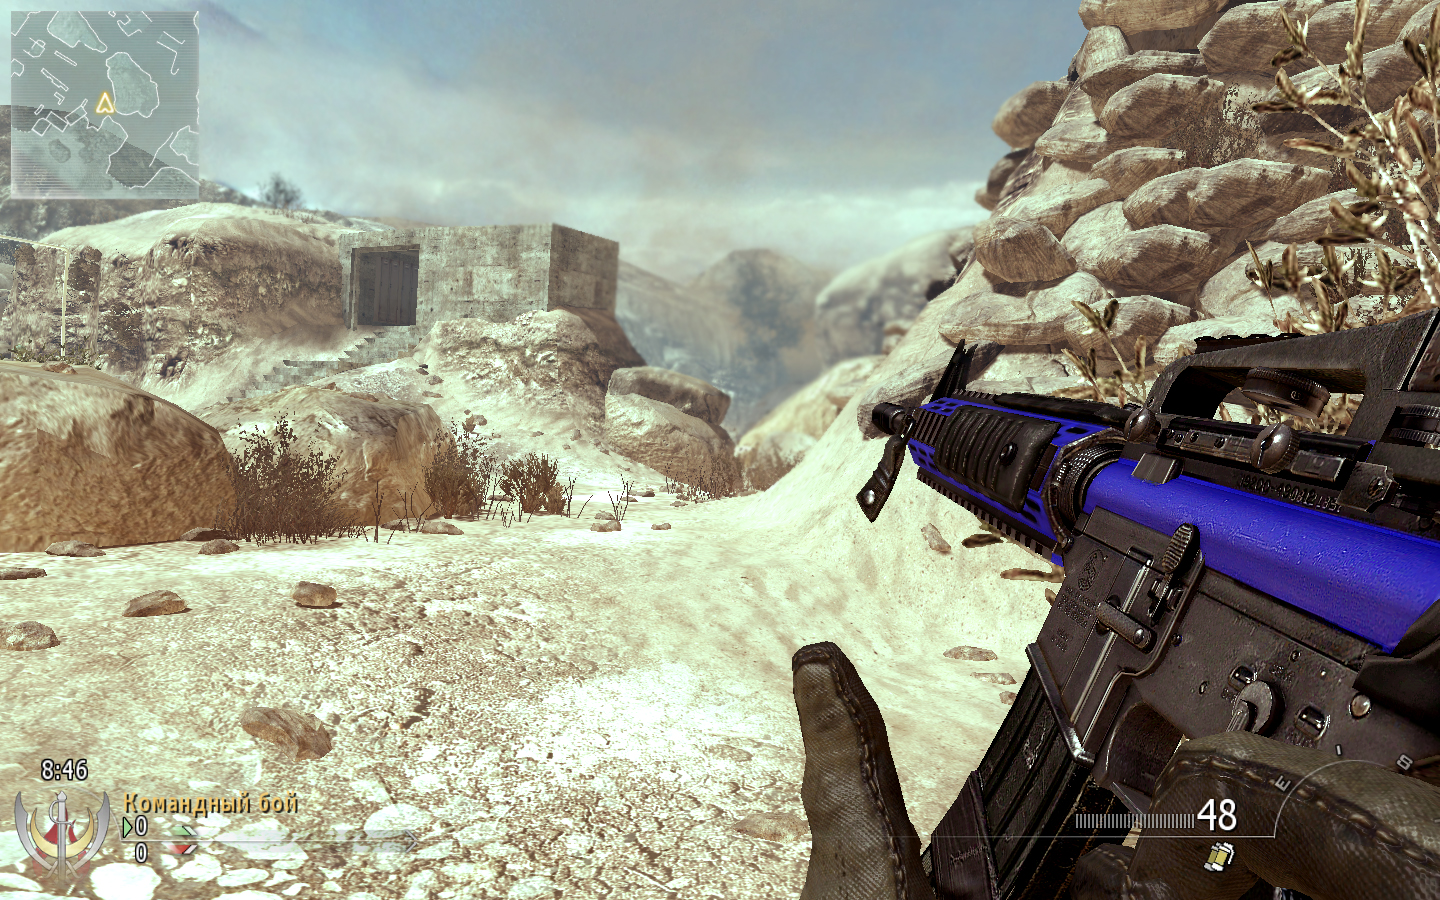 1234 - Call of Duty: Modern Warfare 2